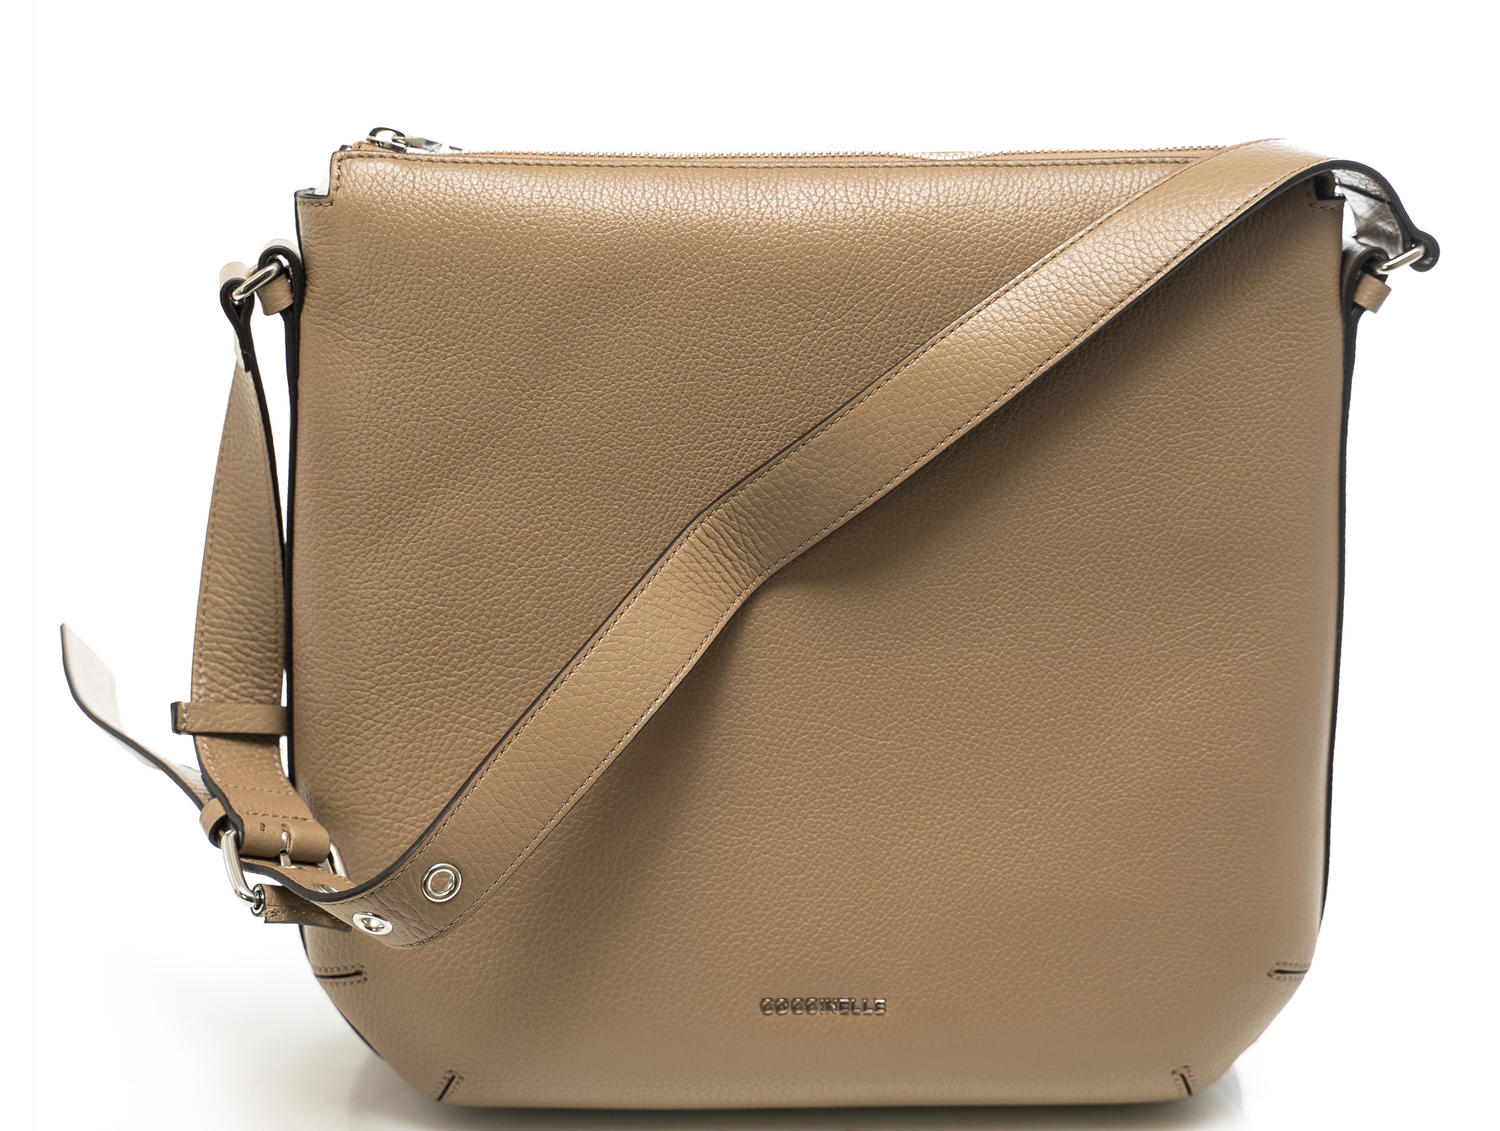 Coccinelle Alyssa Shoulder Bag In Leather Taupe Tau Shop Online At Best Prices